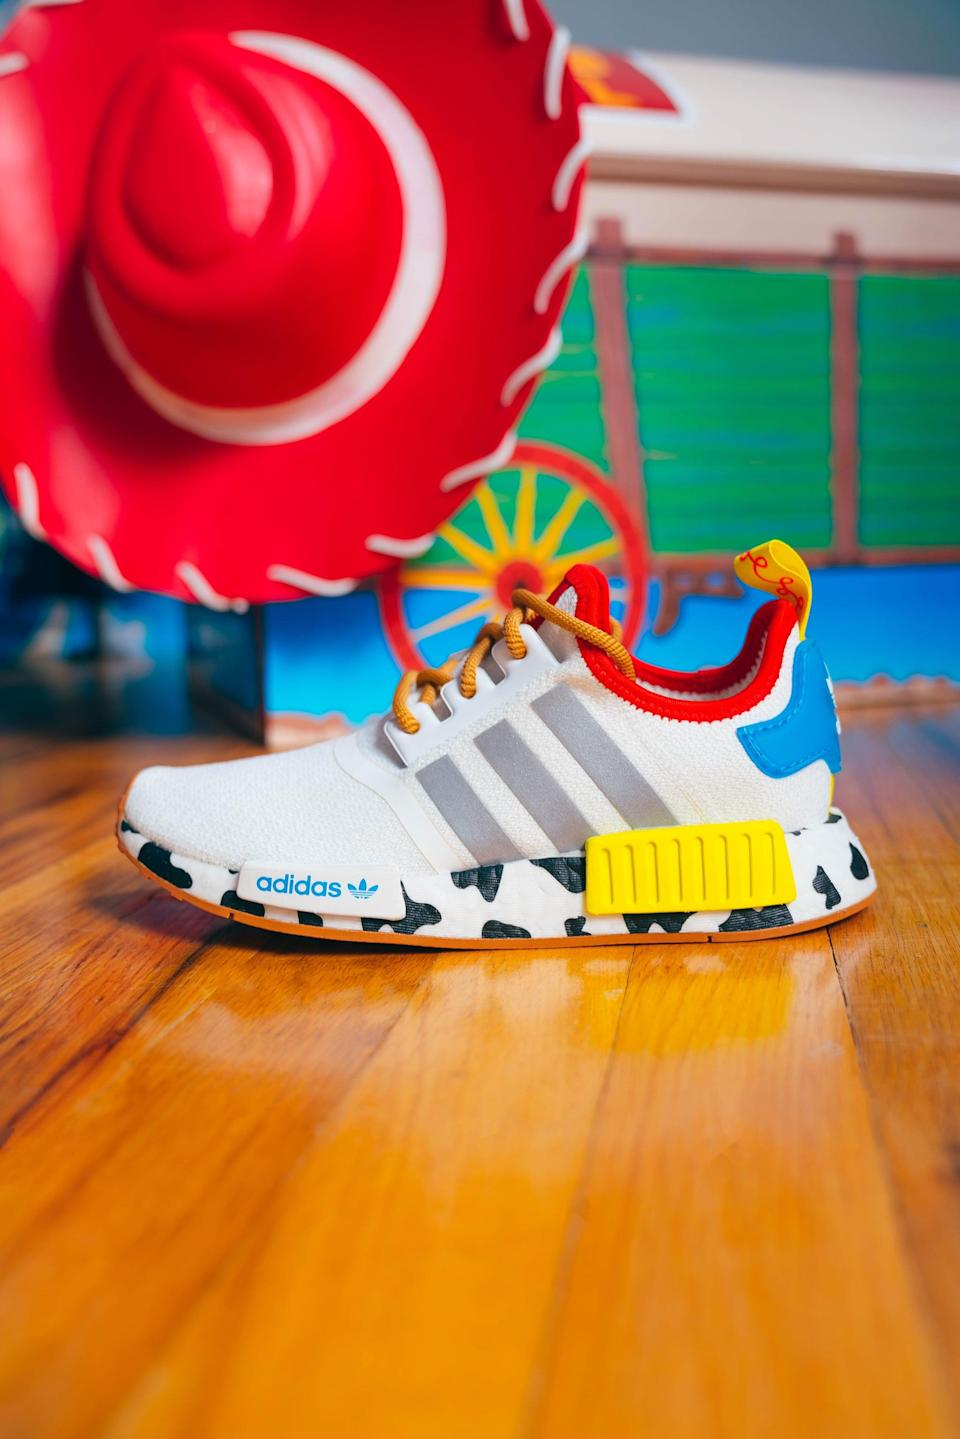 <p>We have a feeling our favorite cowgirl would approve of these Adidas Jessie x NMD Shoes.</p>